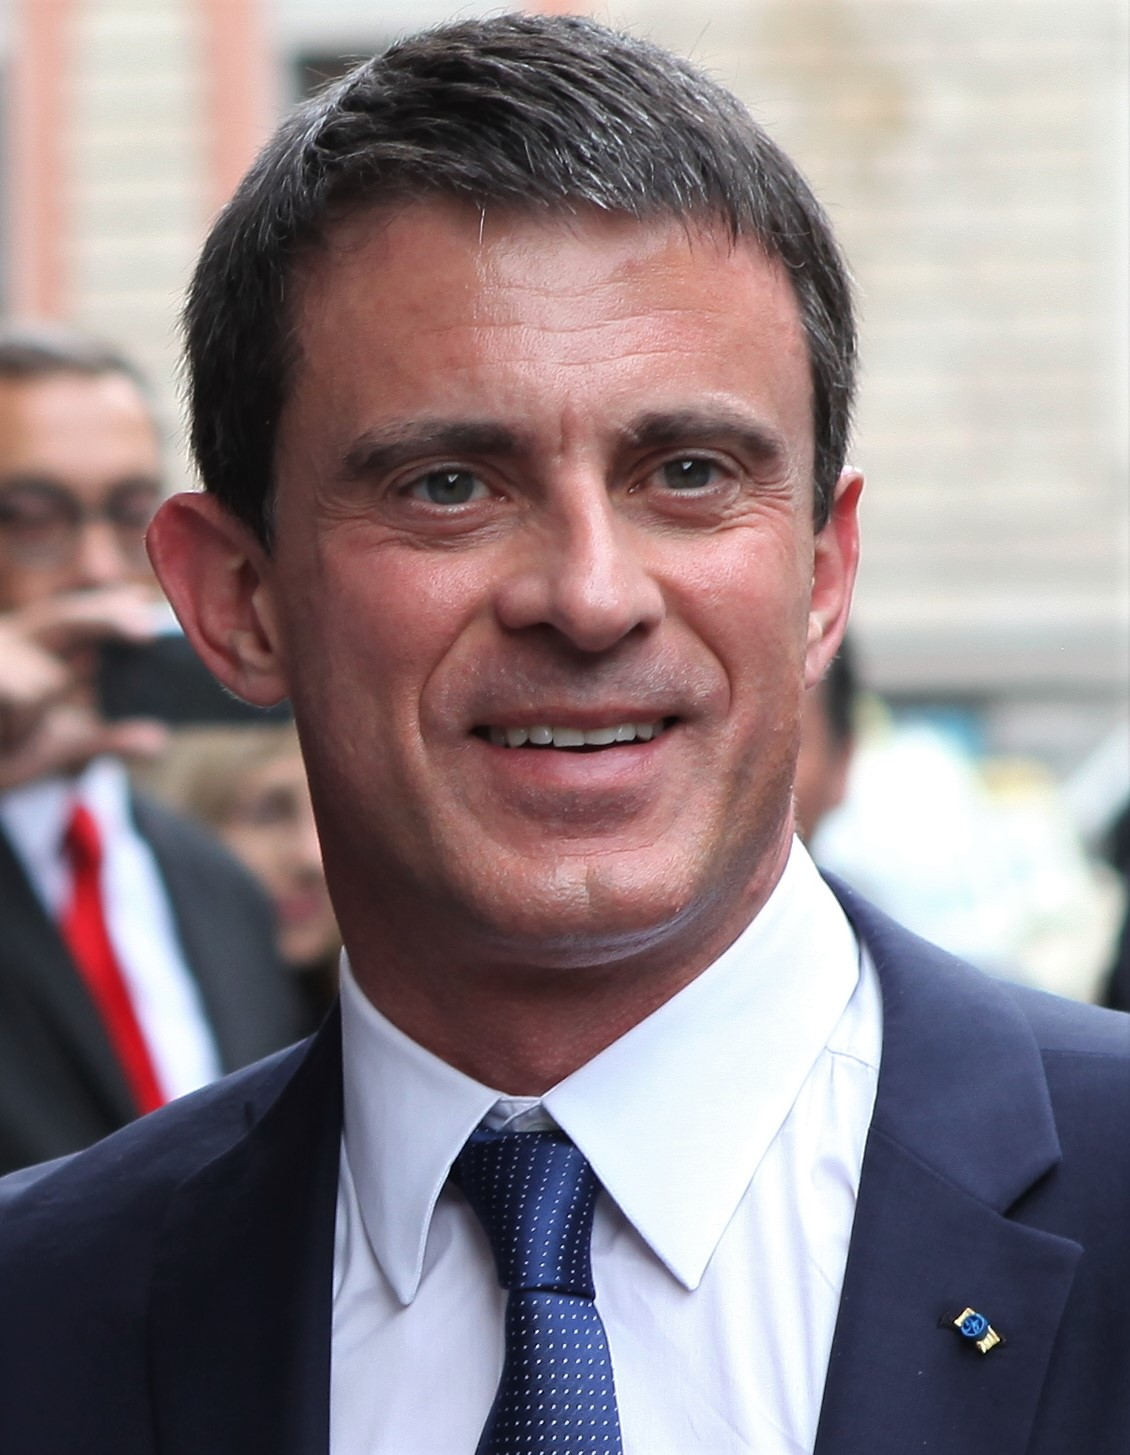 Former French Prime Minister Manuel Valls. Credit: Wikimedia Commons.